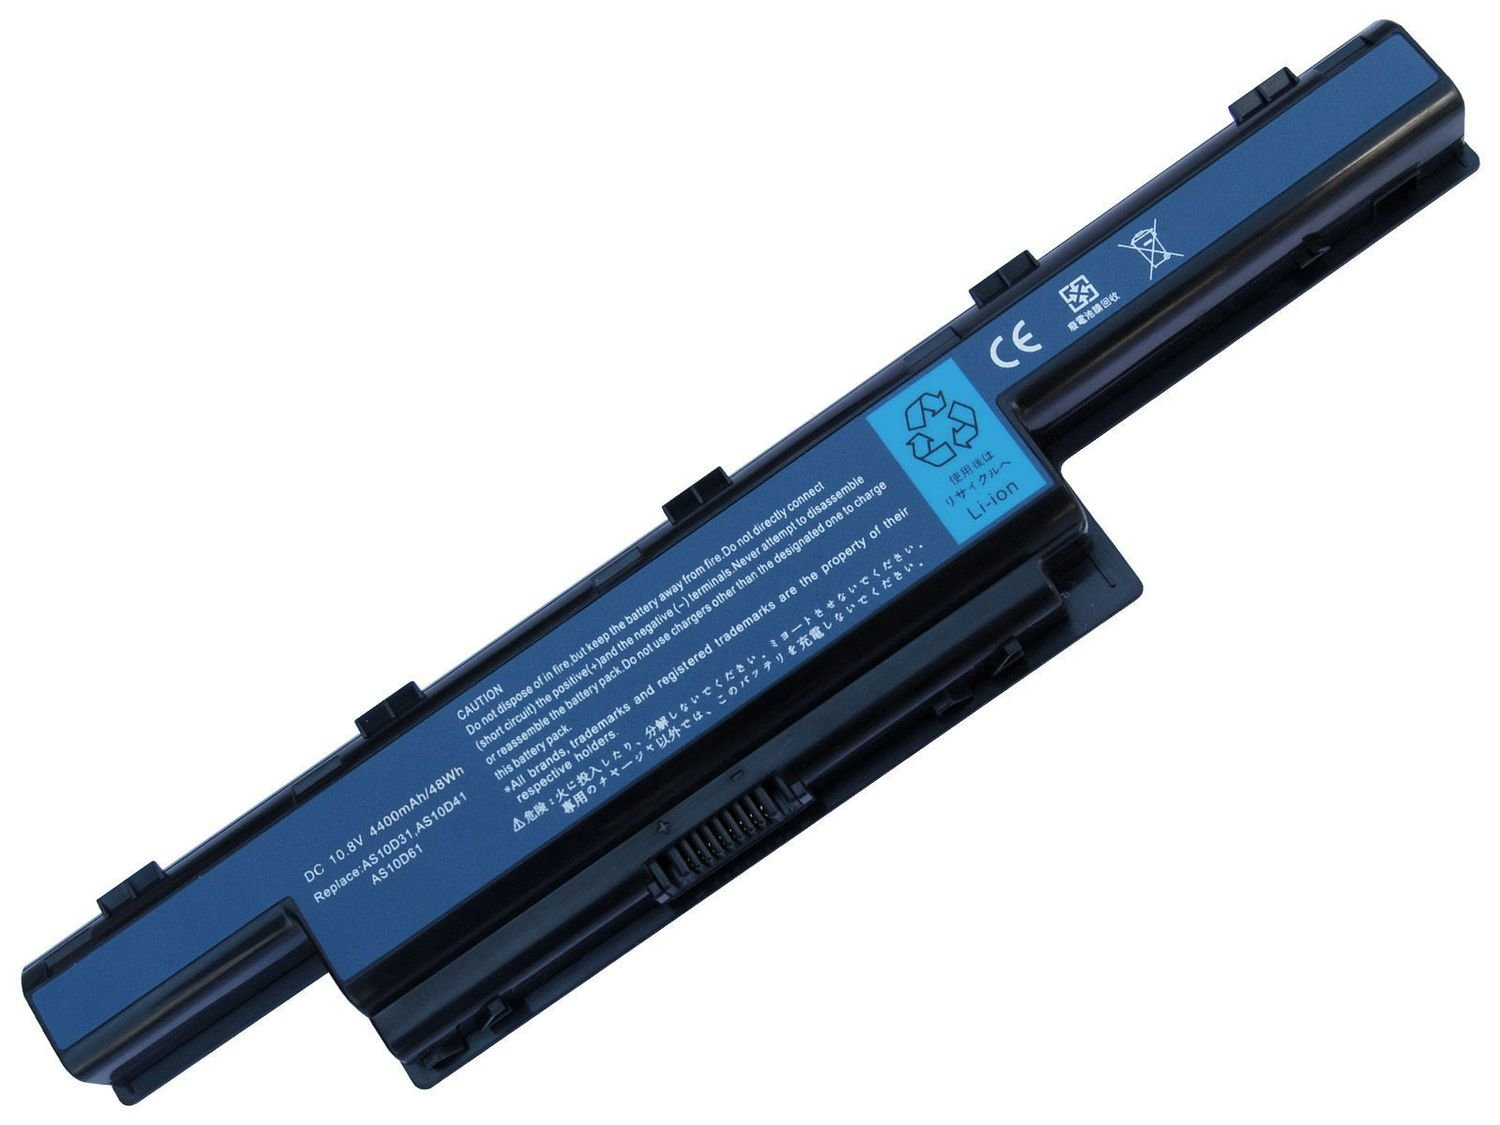 Acer aspire 4553 4553G 4625 4625G Series compatible laptop battery